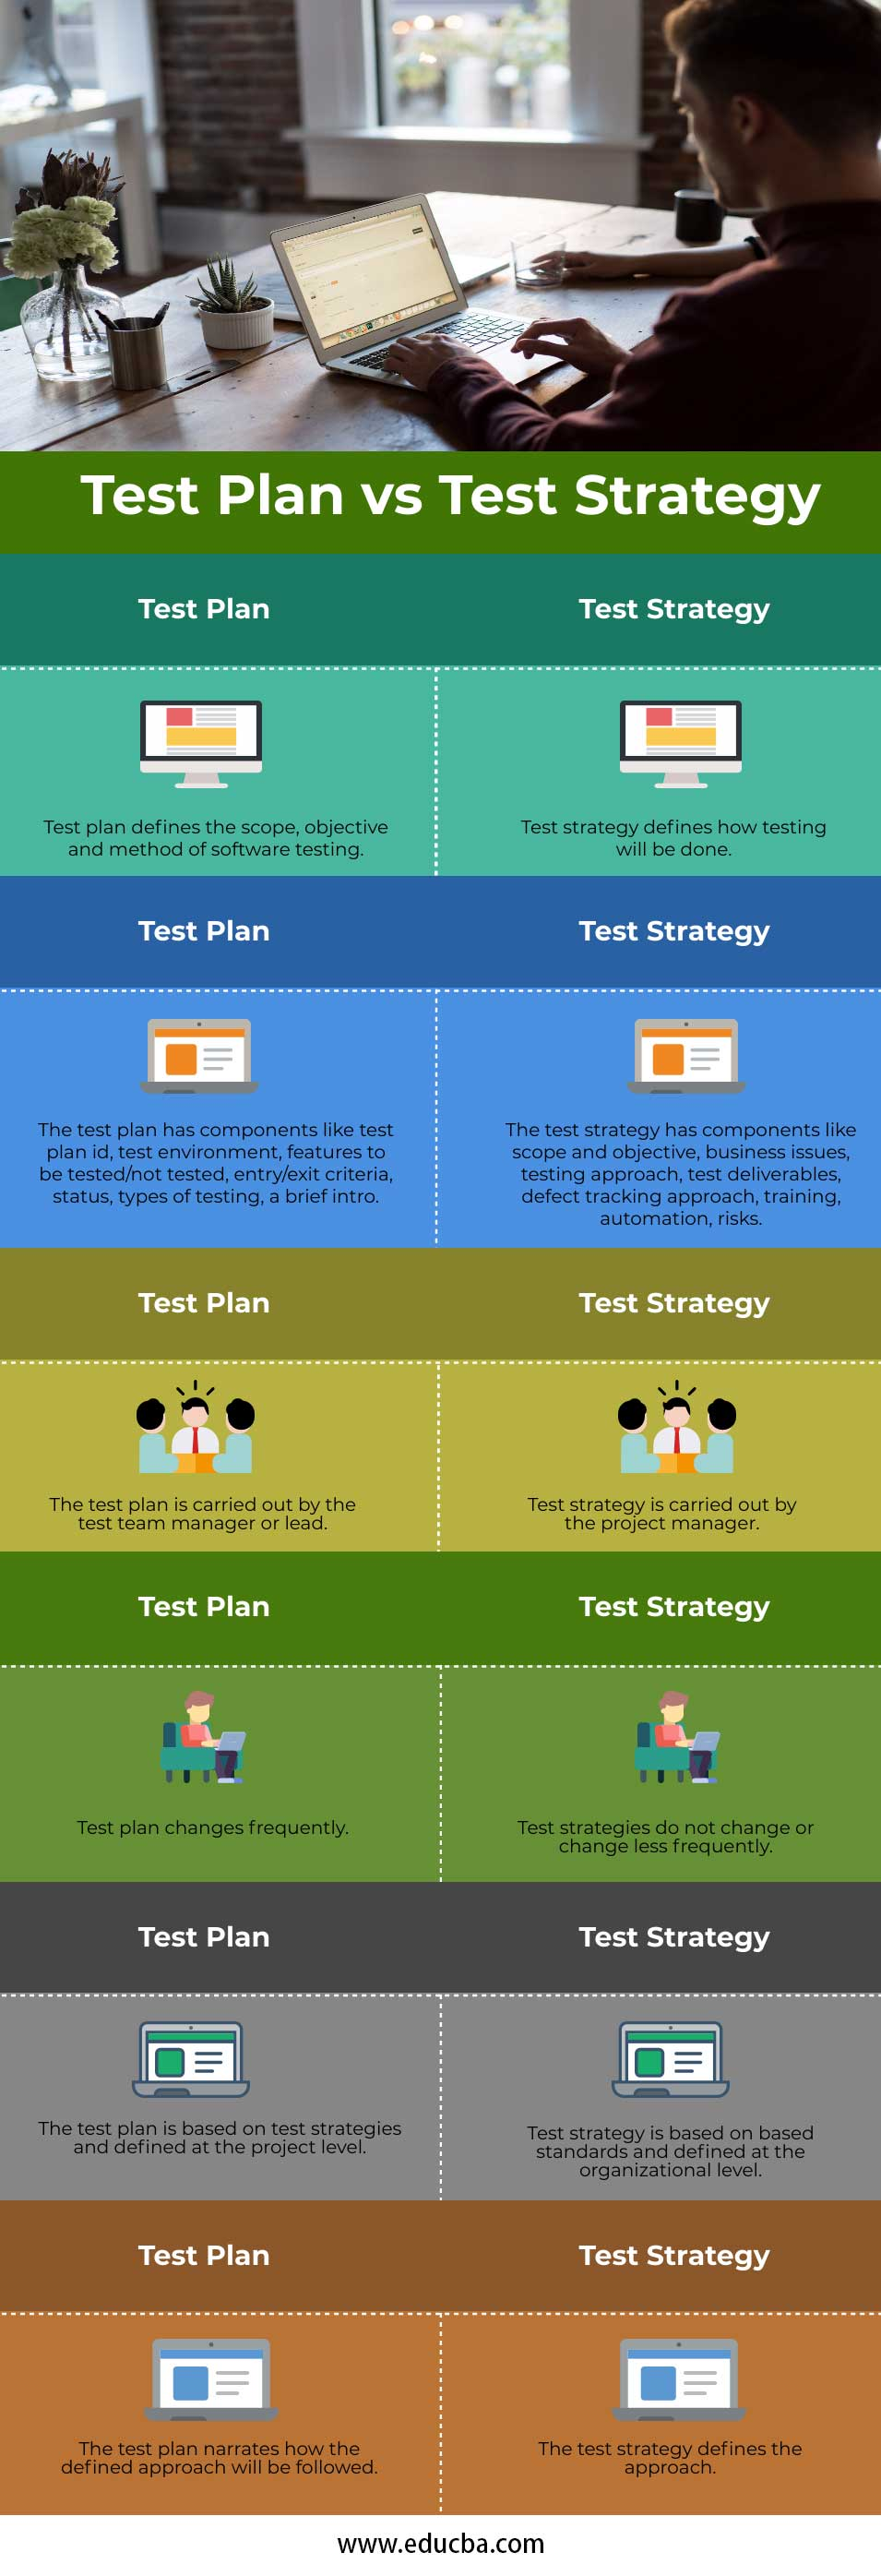 Test Plan vs Test Strategy Info